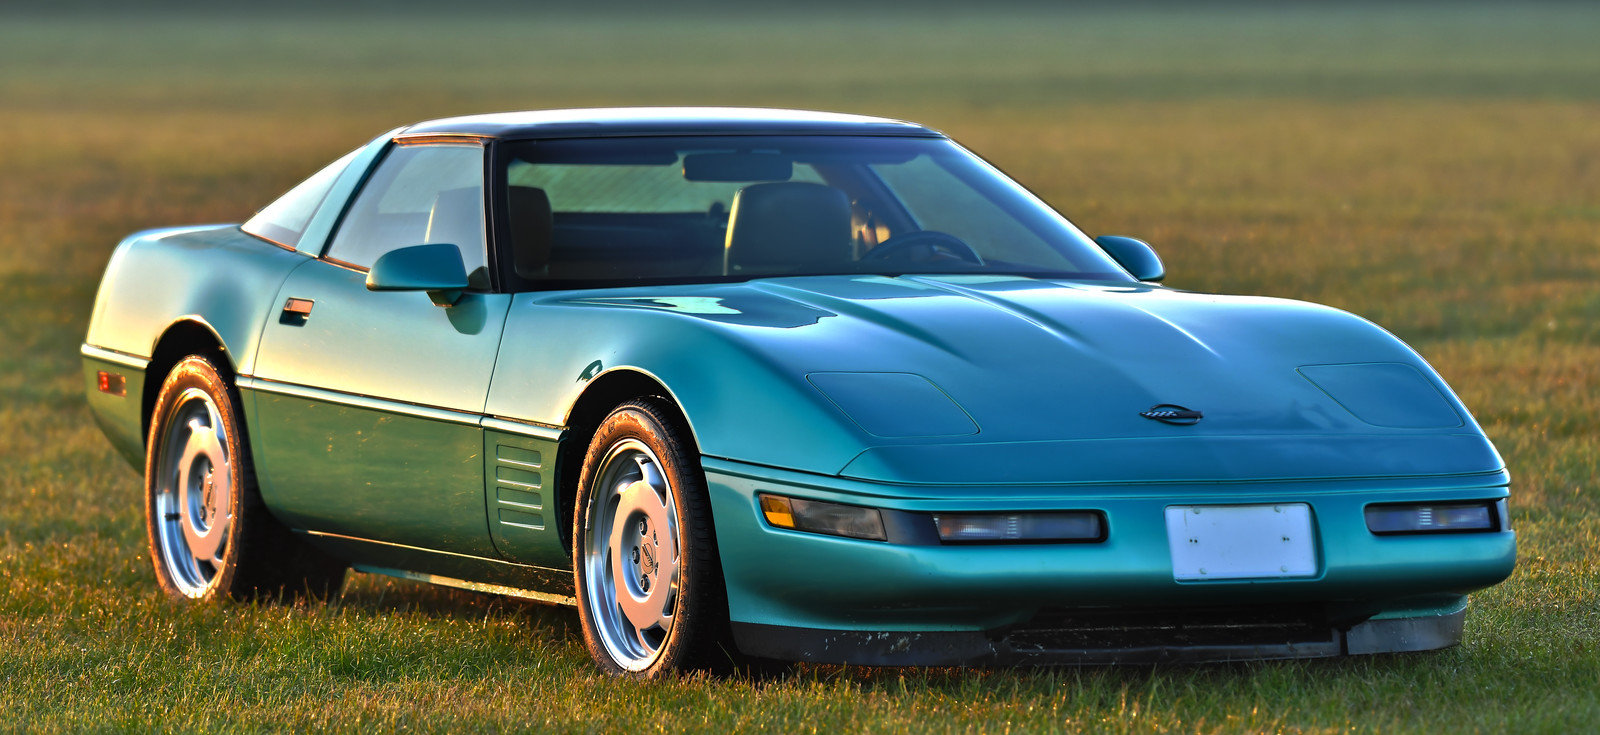 1991 Corvette C4 Targa 5.7 V8 Geiger For Sale (picture 1 of 6)